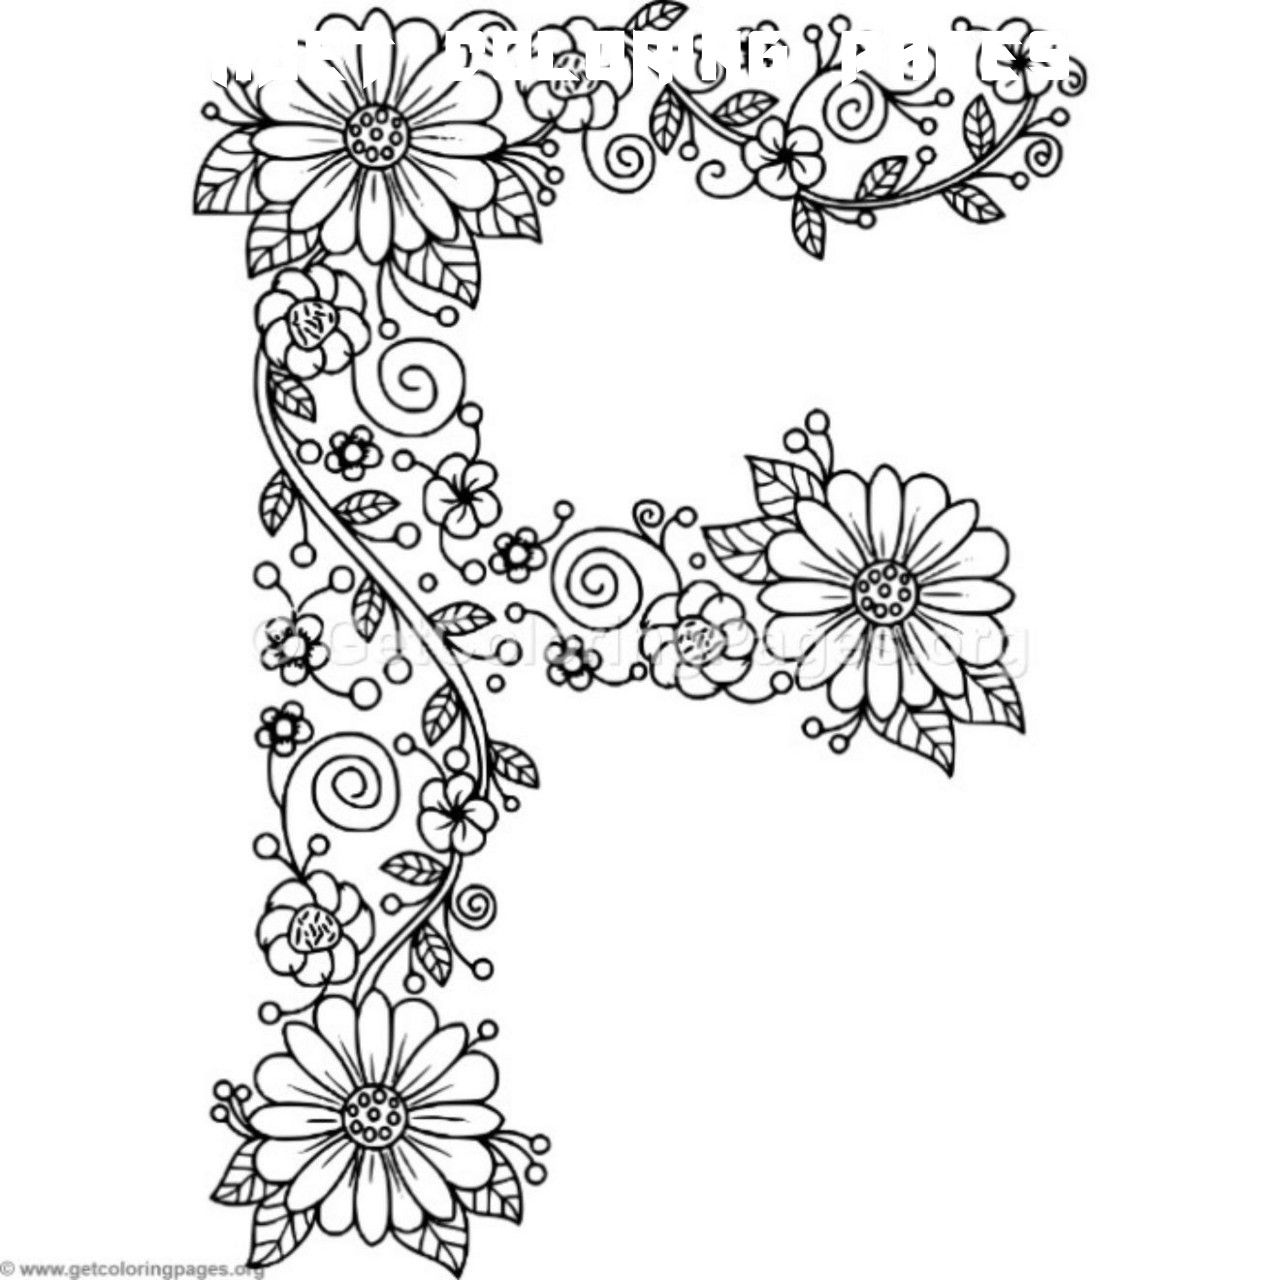 7 Alphabet Coloring Pages For Adults In 2020 Alphabet Coloring Pages Floral Letters Coloring Letters